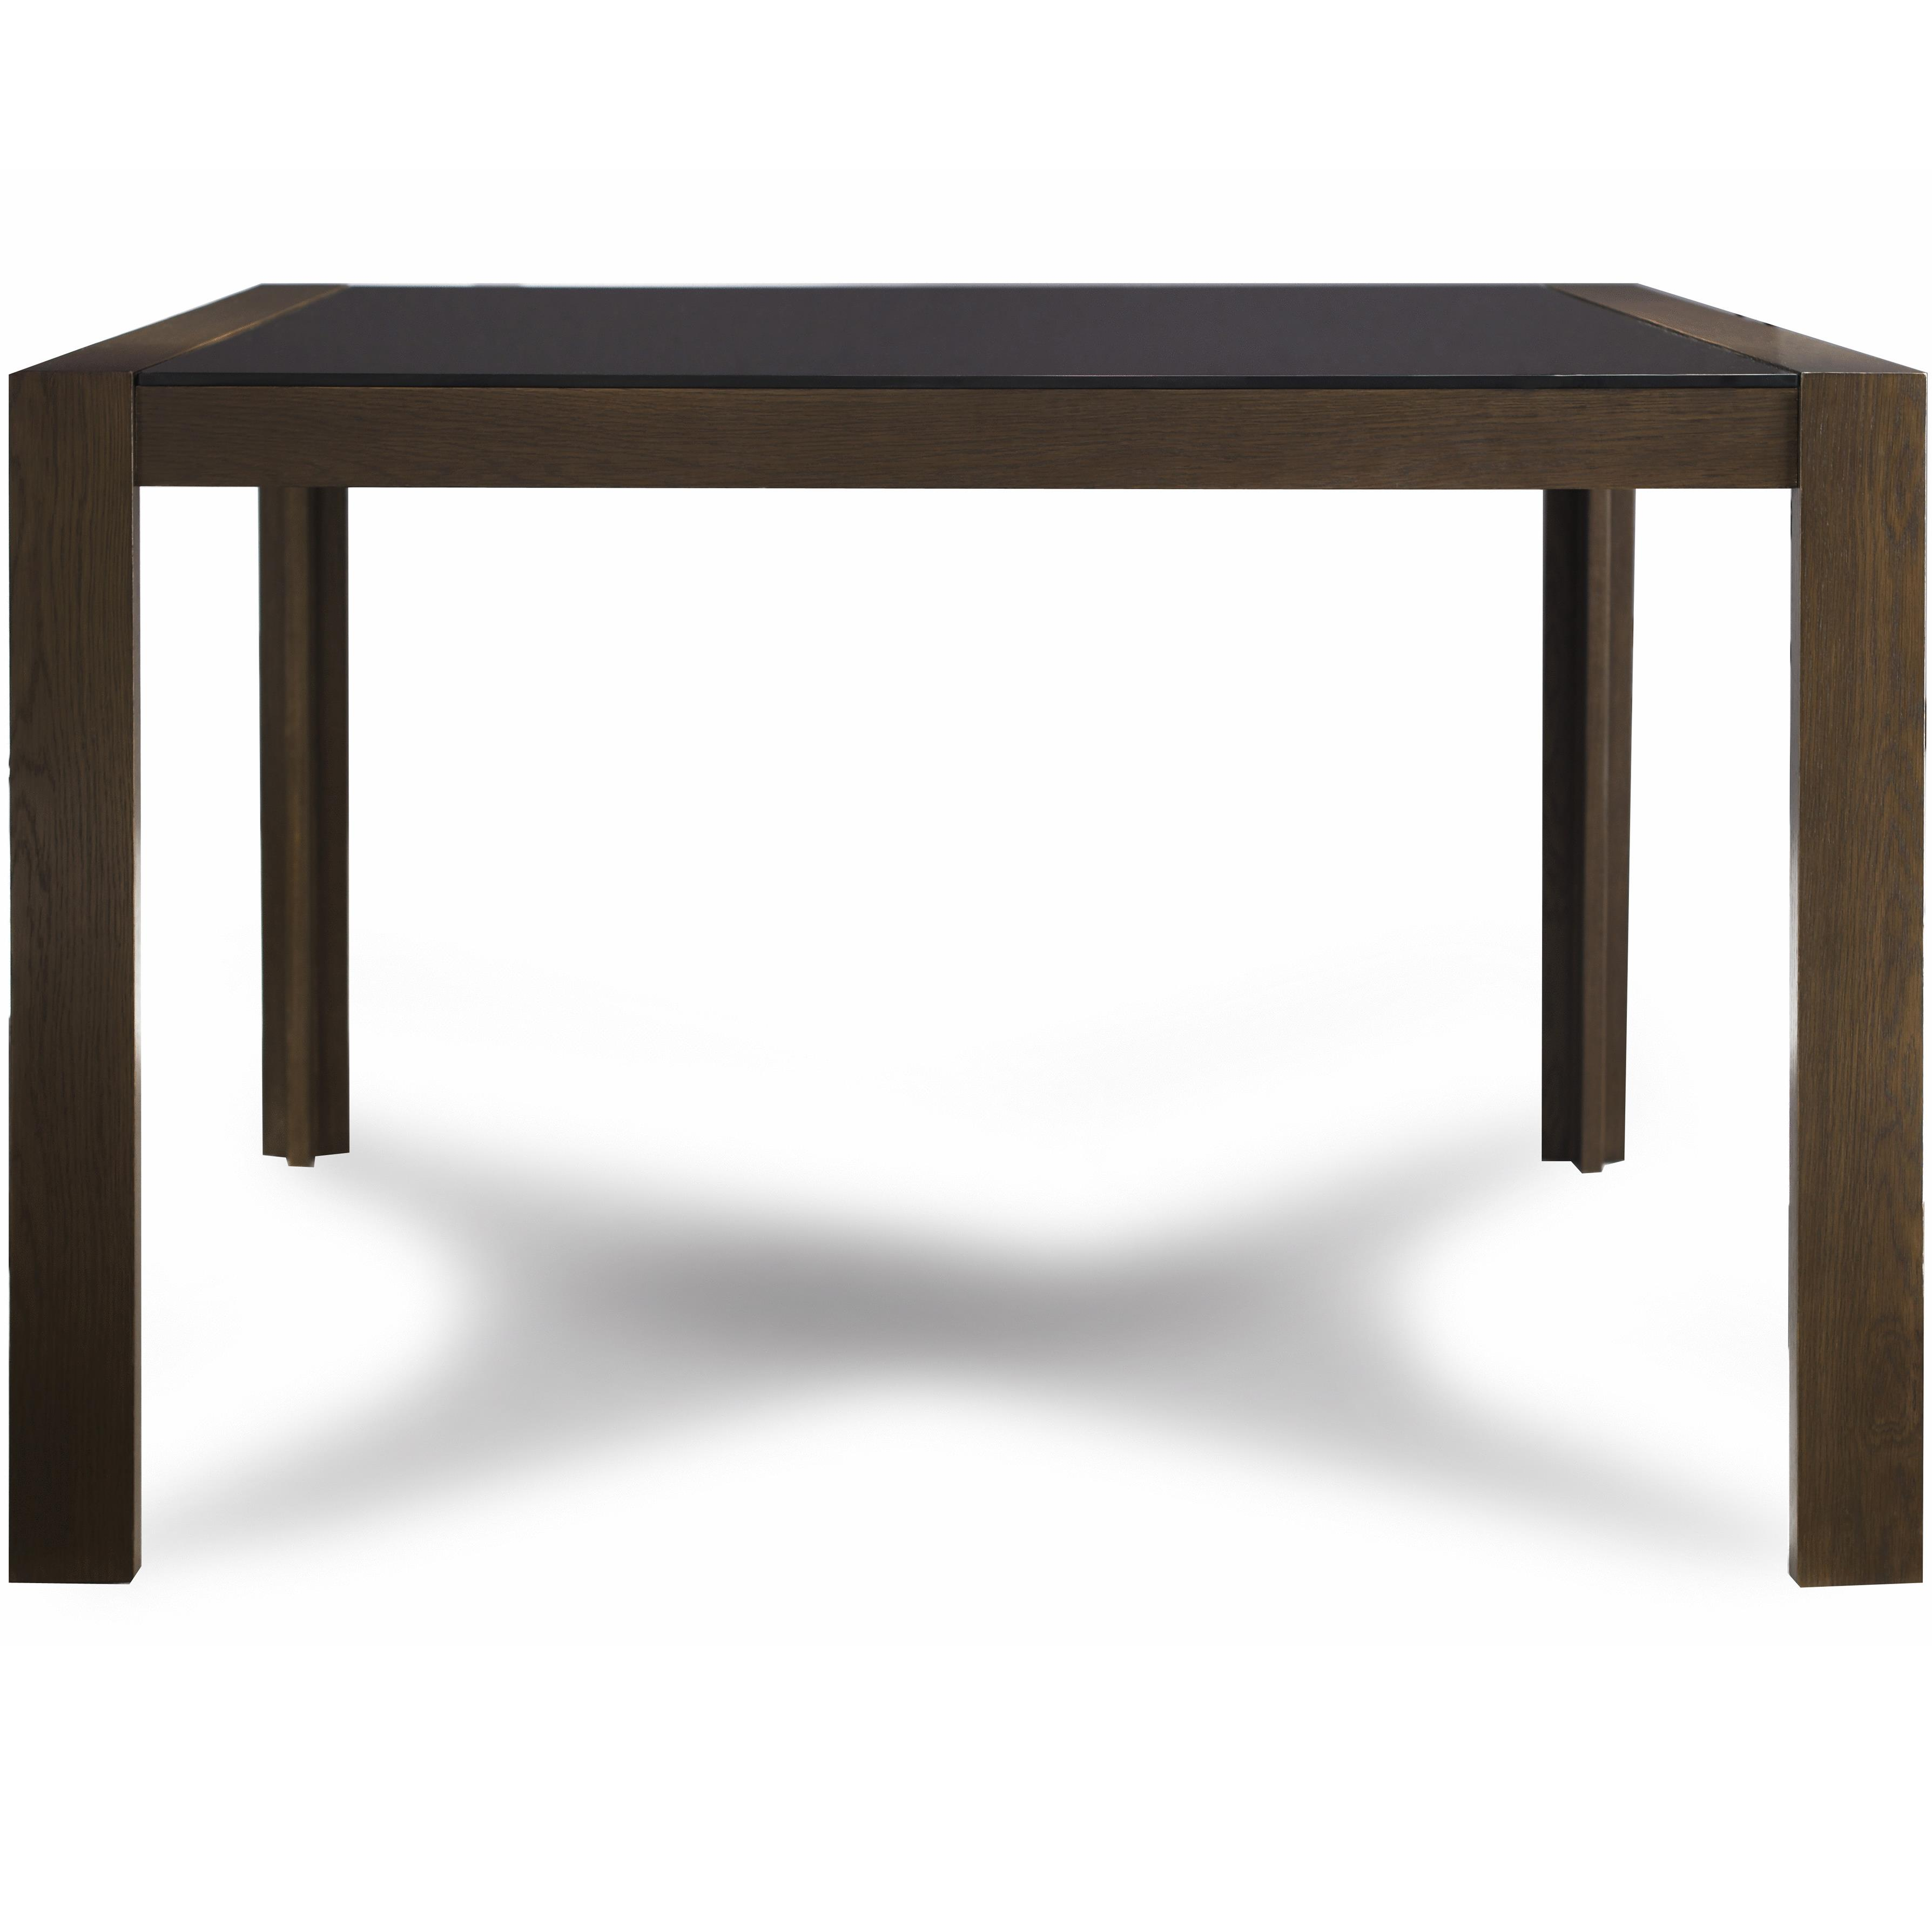 Belfort Select Modera Square Cafe Table - Item Number: 525-161+160